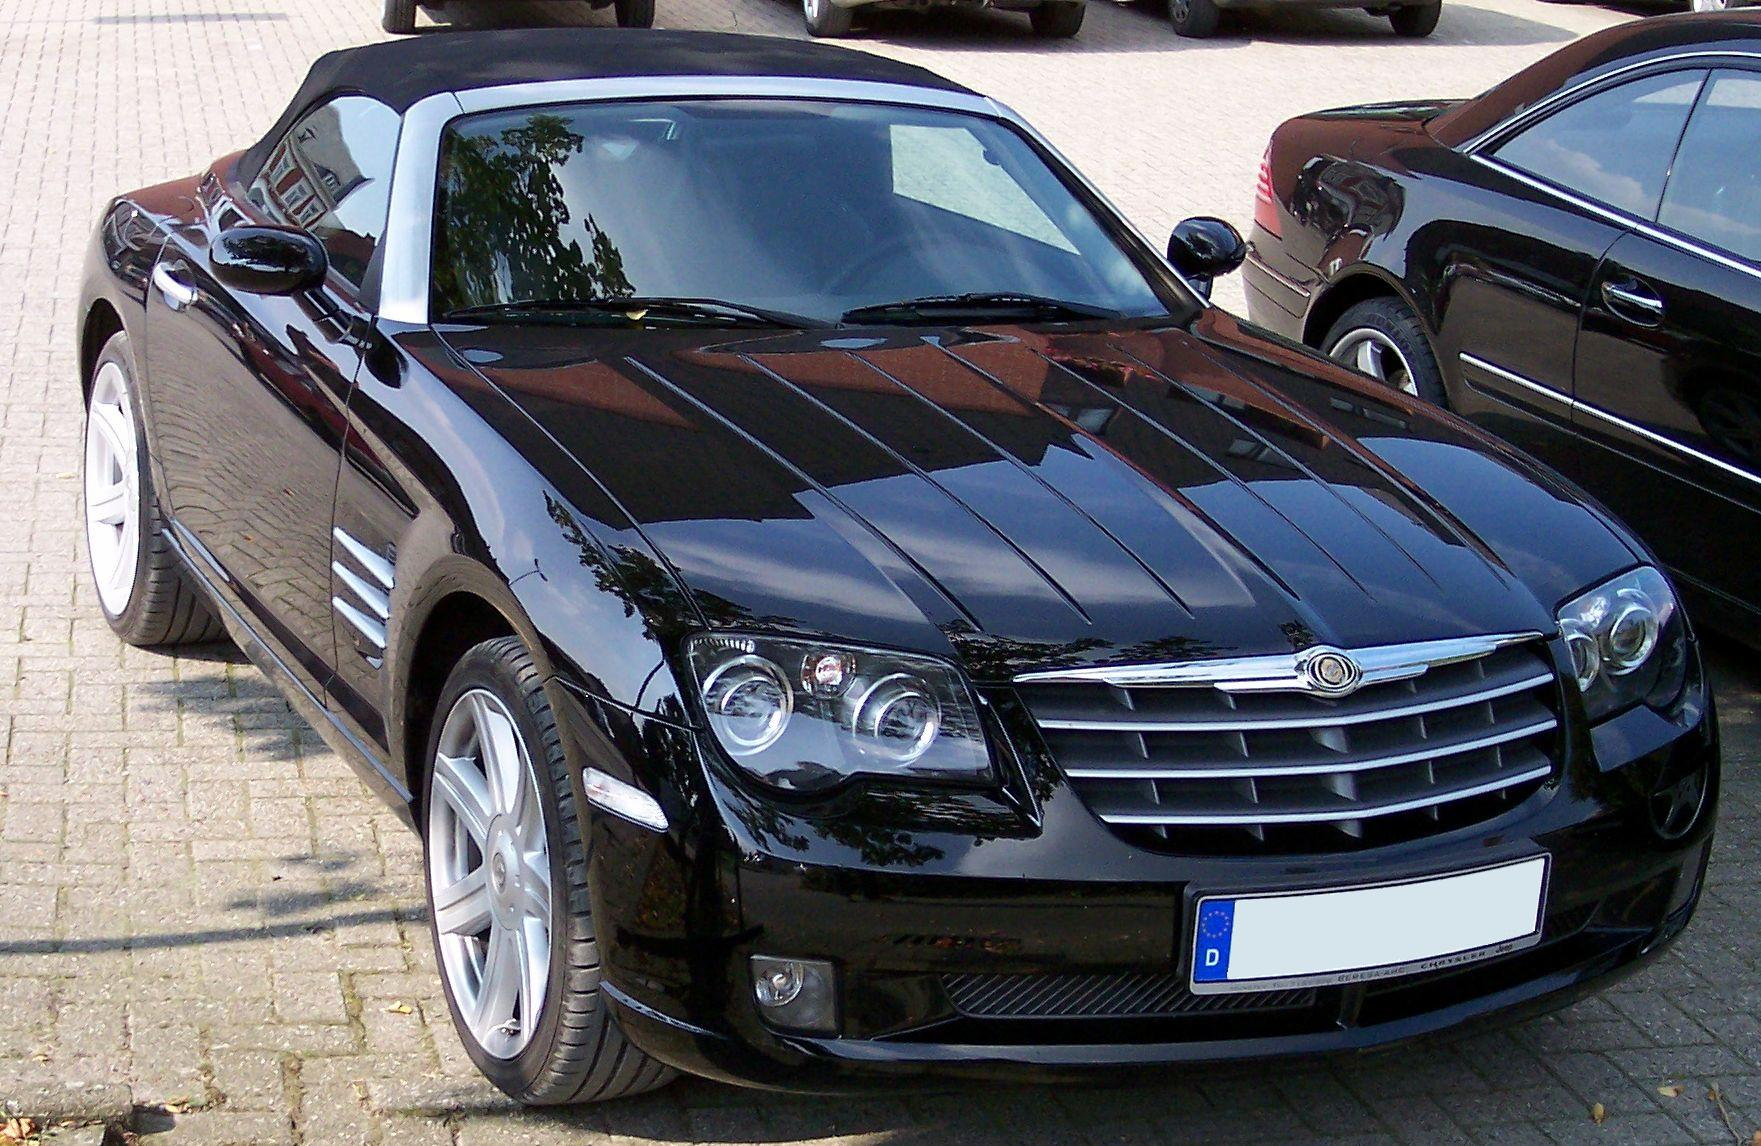 Chrysler Crossfire Cabrio Black Vr on 2004 chrysler crossfire